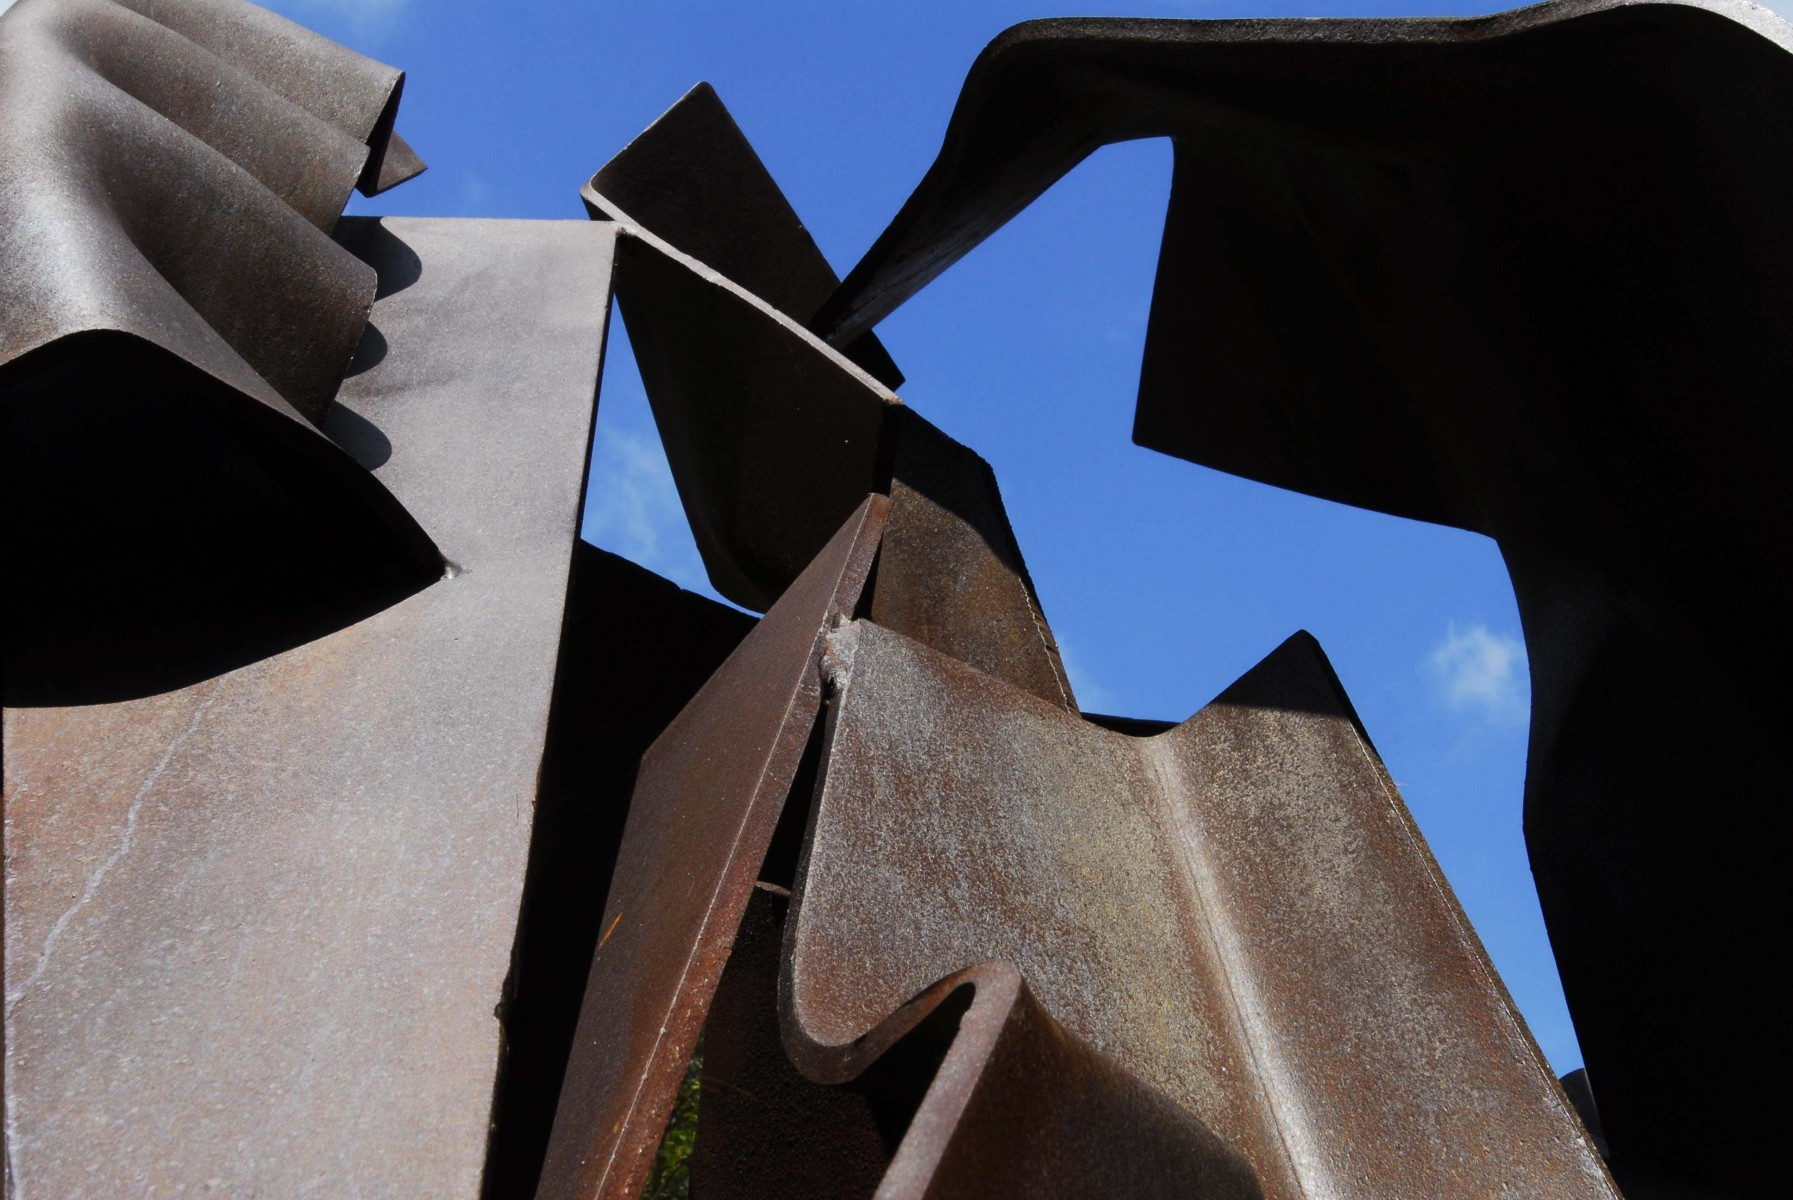 Close-up of sculpture with blue sky showing through spaces